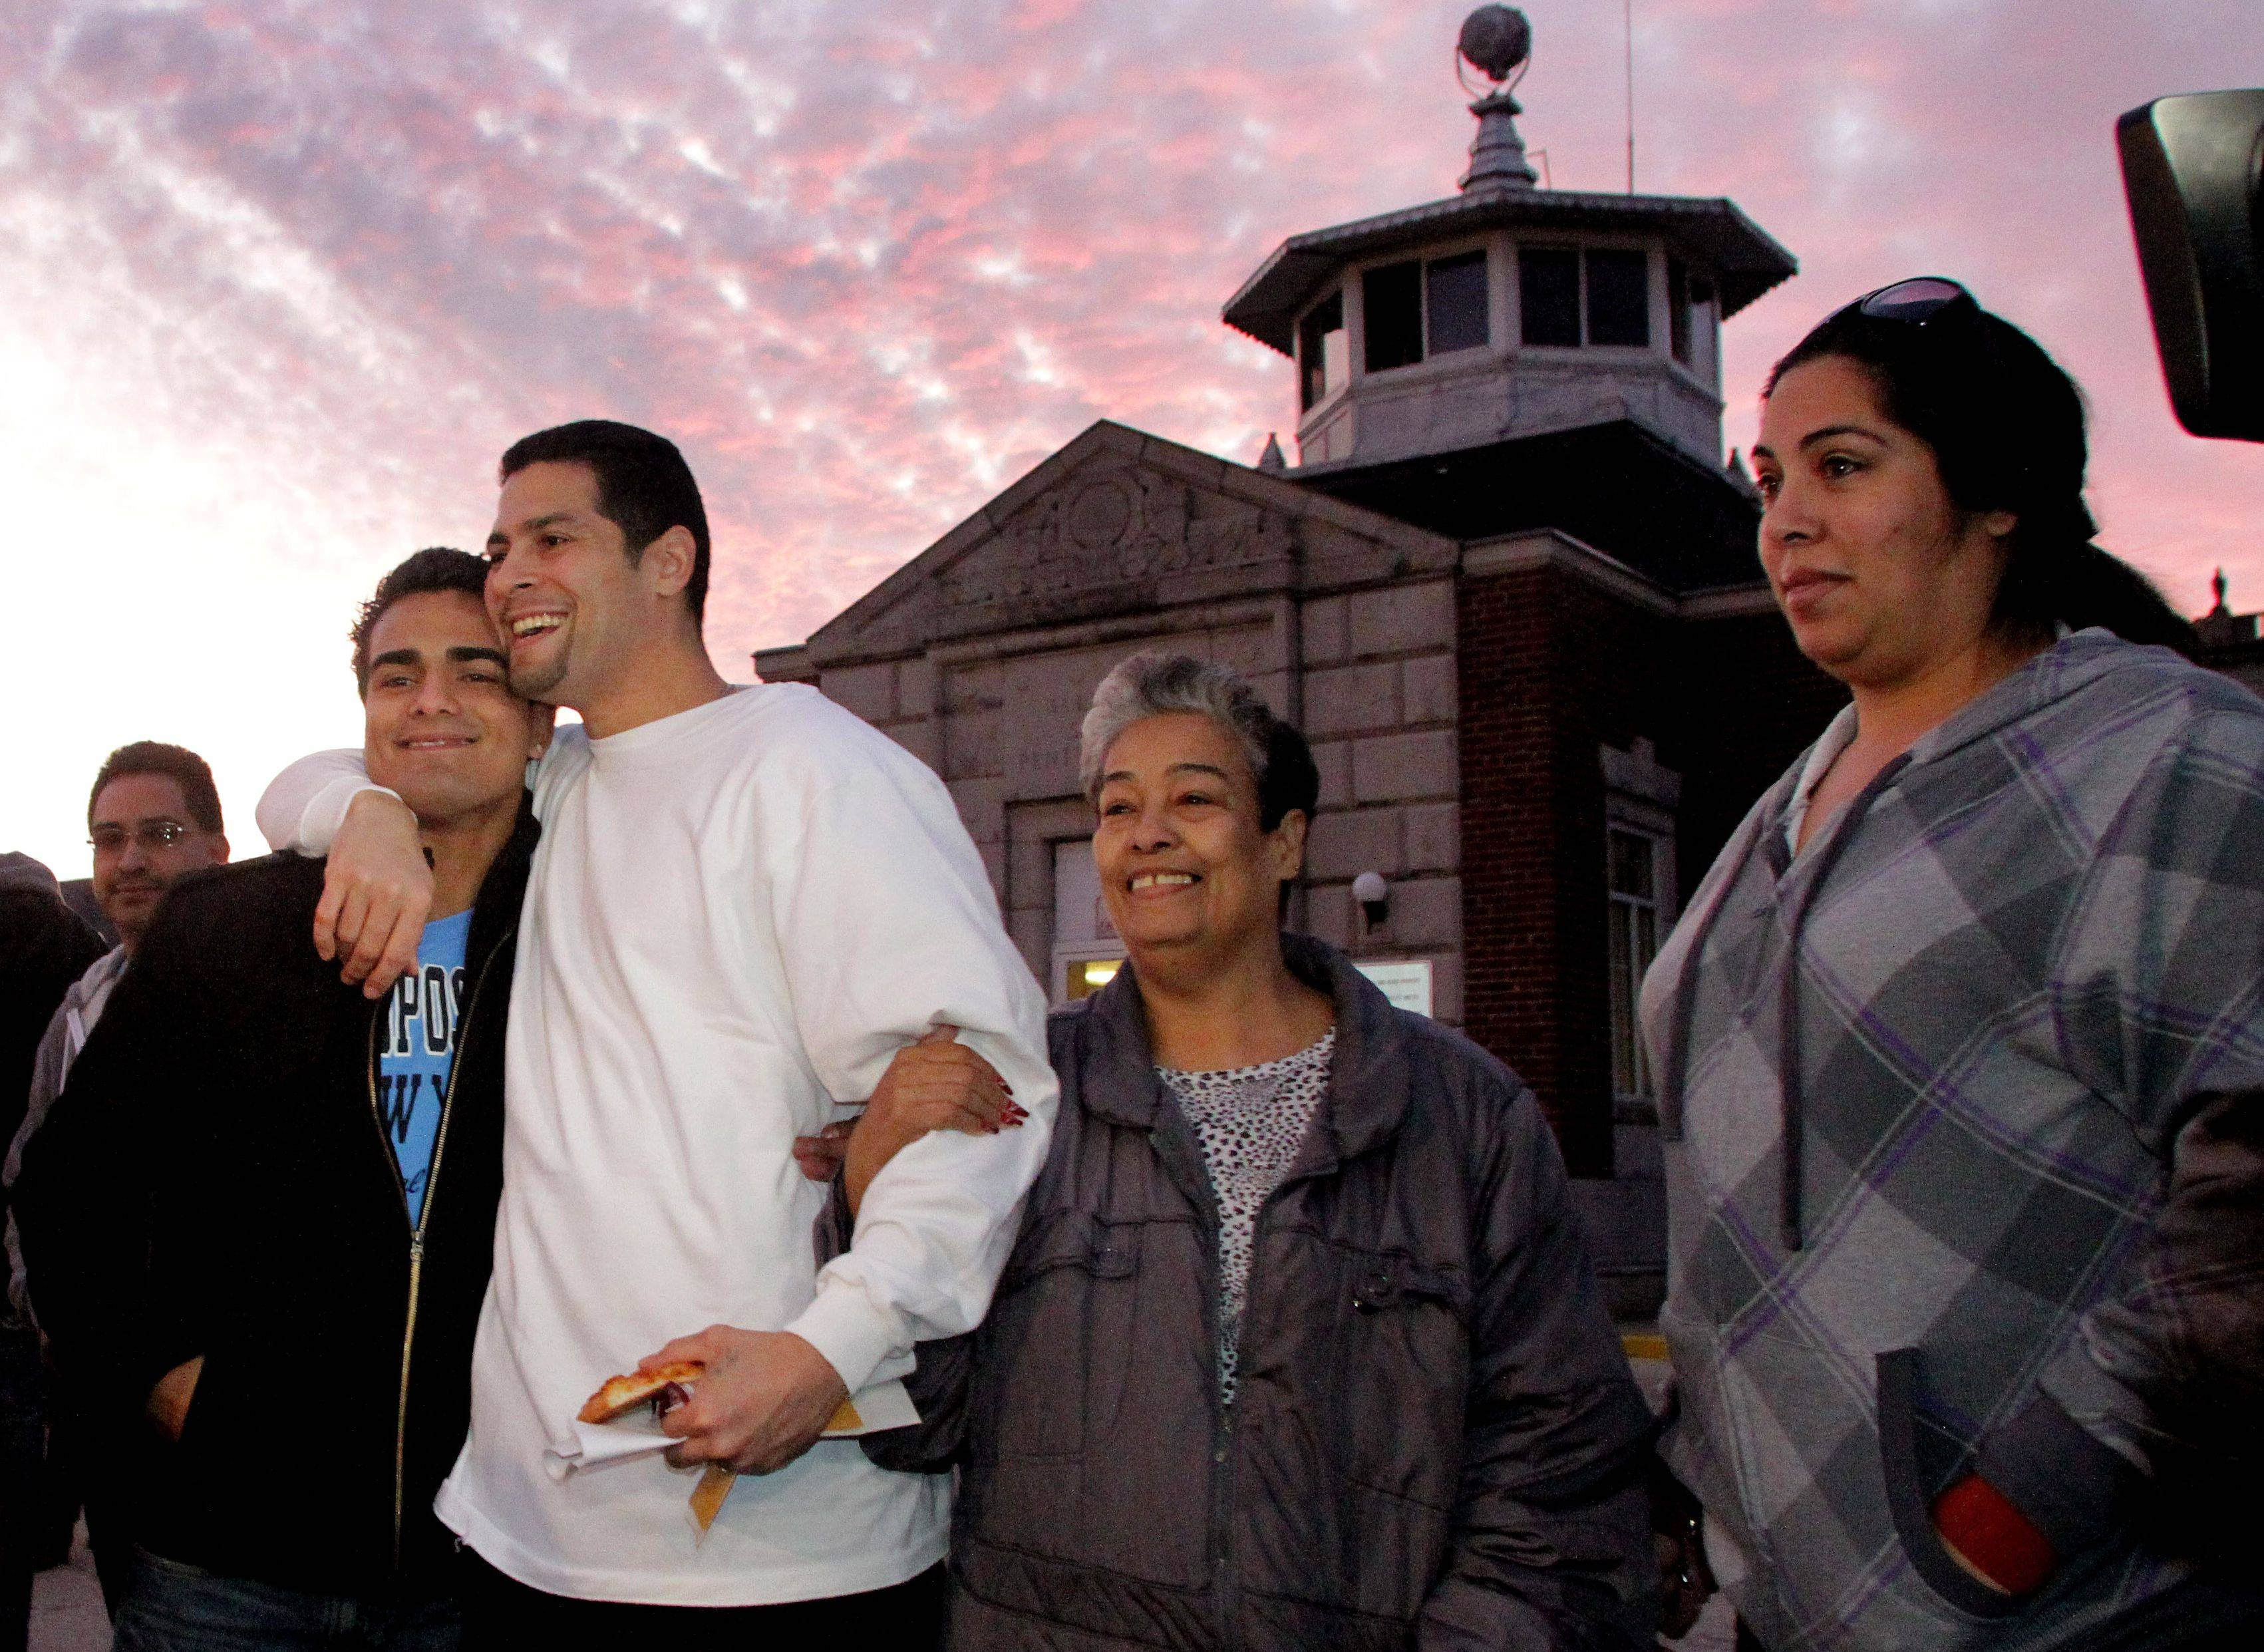 Juan Rivera is released from Stateville State Prison on Friday after an appellate court ruling throwing out his 1992 conviction for rape and murder. On the left is his nephew John Michael Diaz, on the right is mother Carmen Rivera and his sister Rebecca Leon.